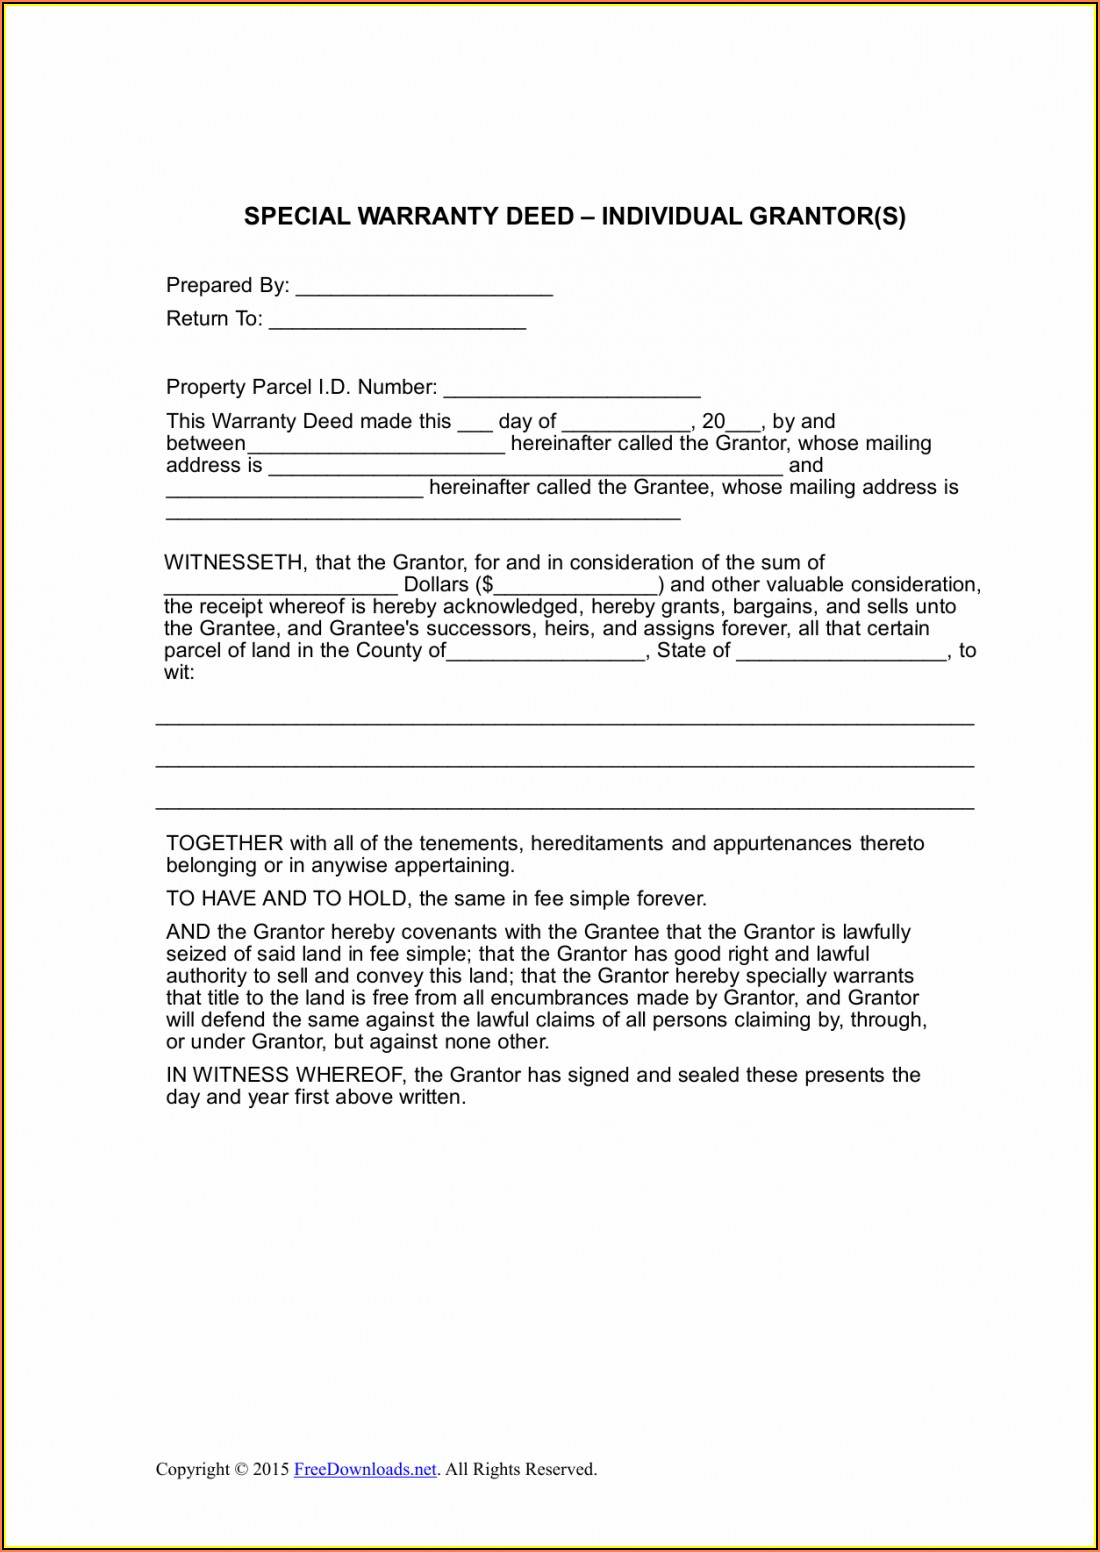 Michigan Warranty Deed Statutory Form